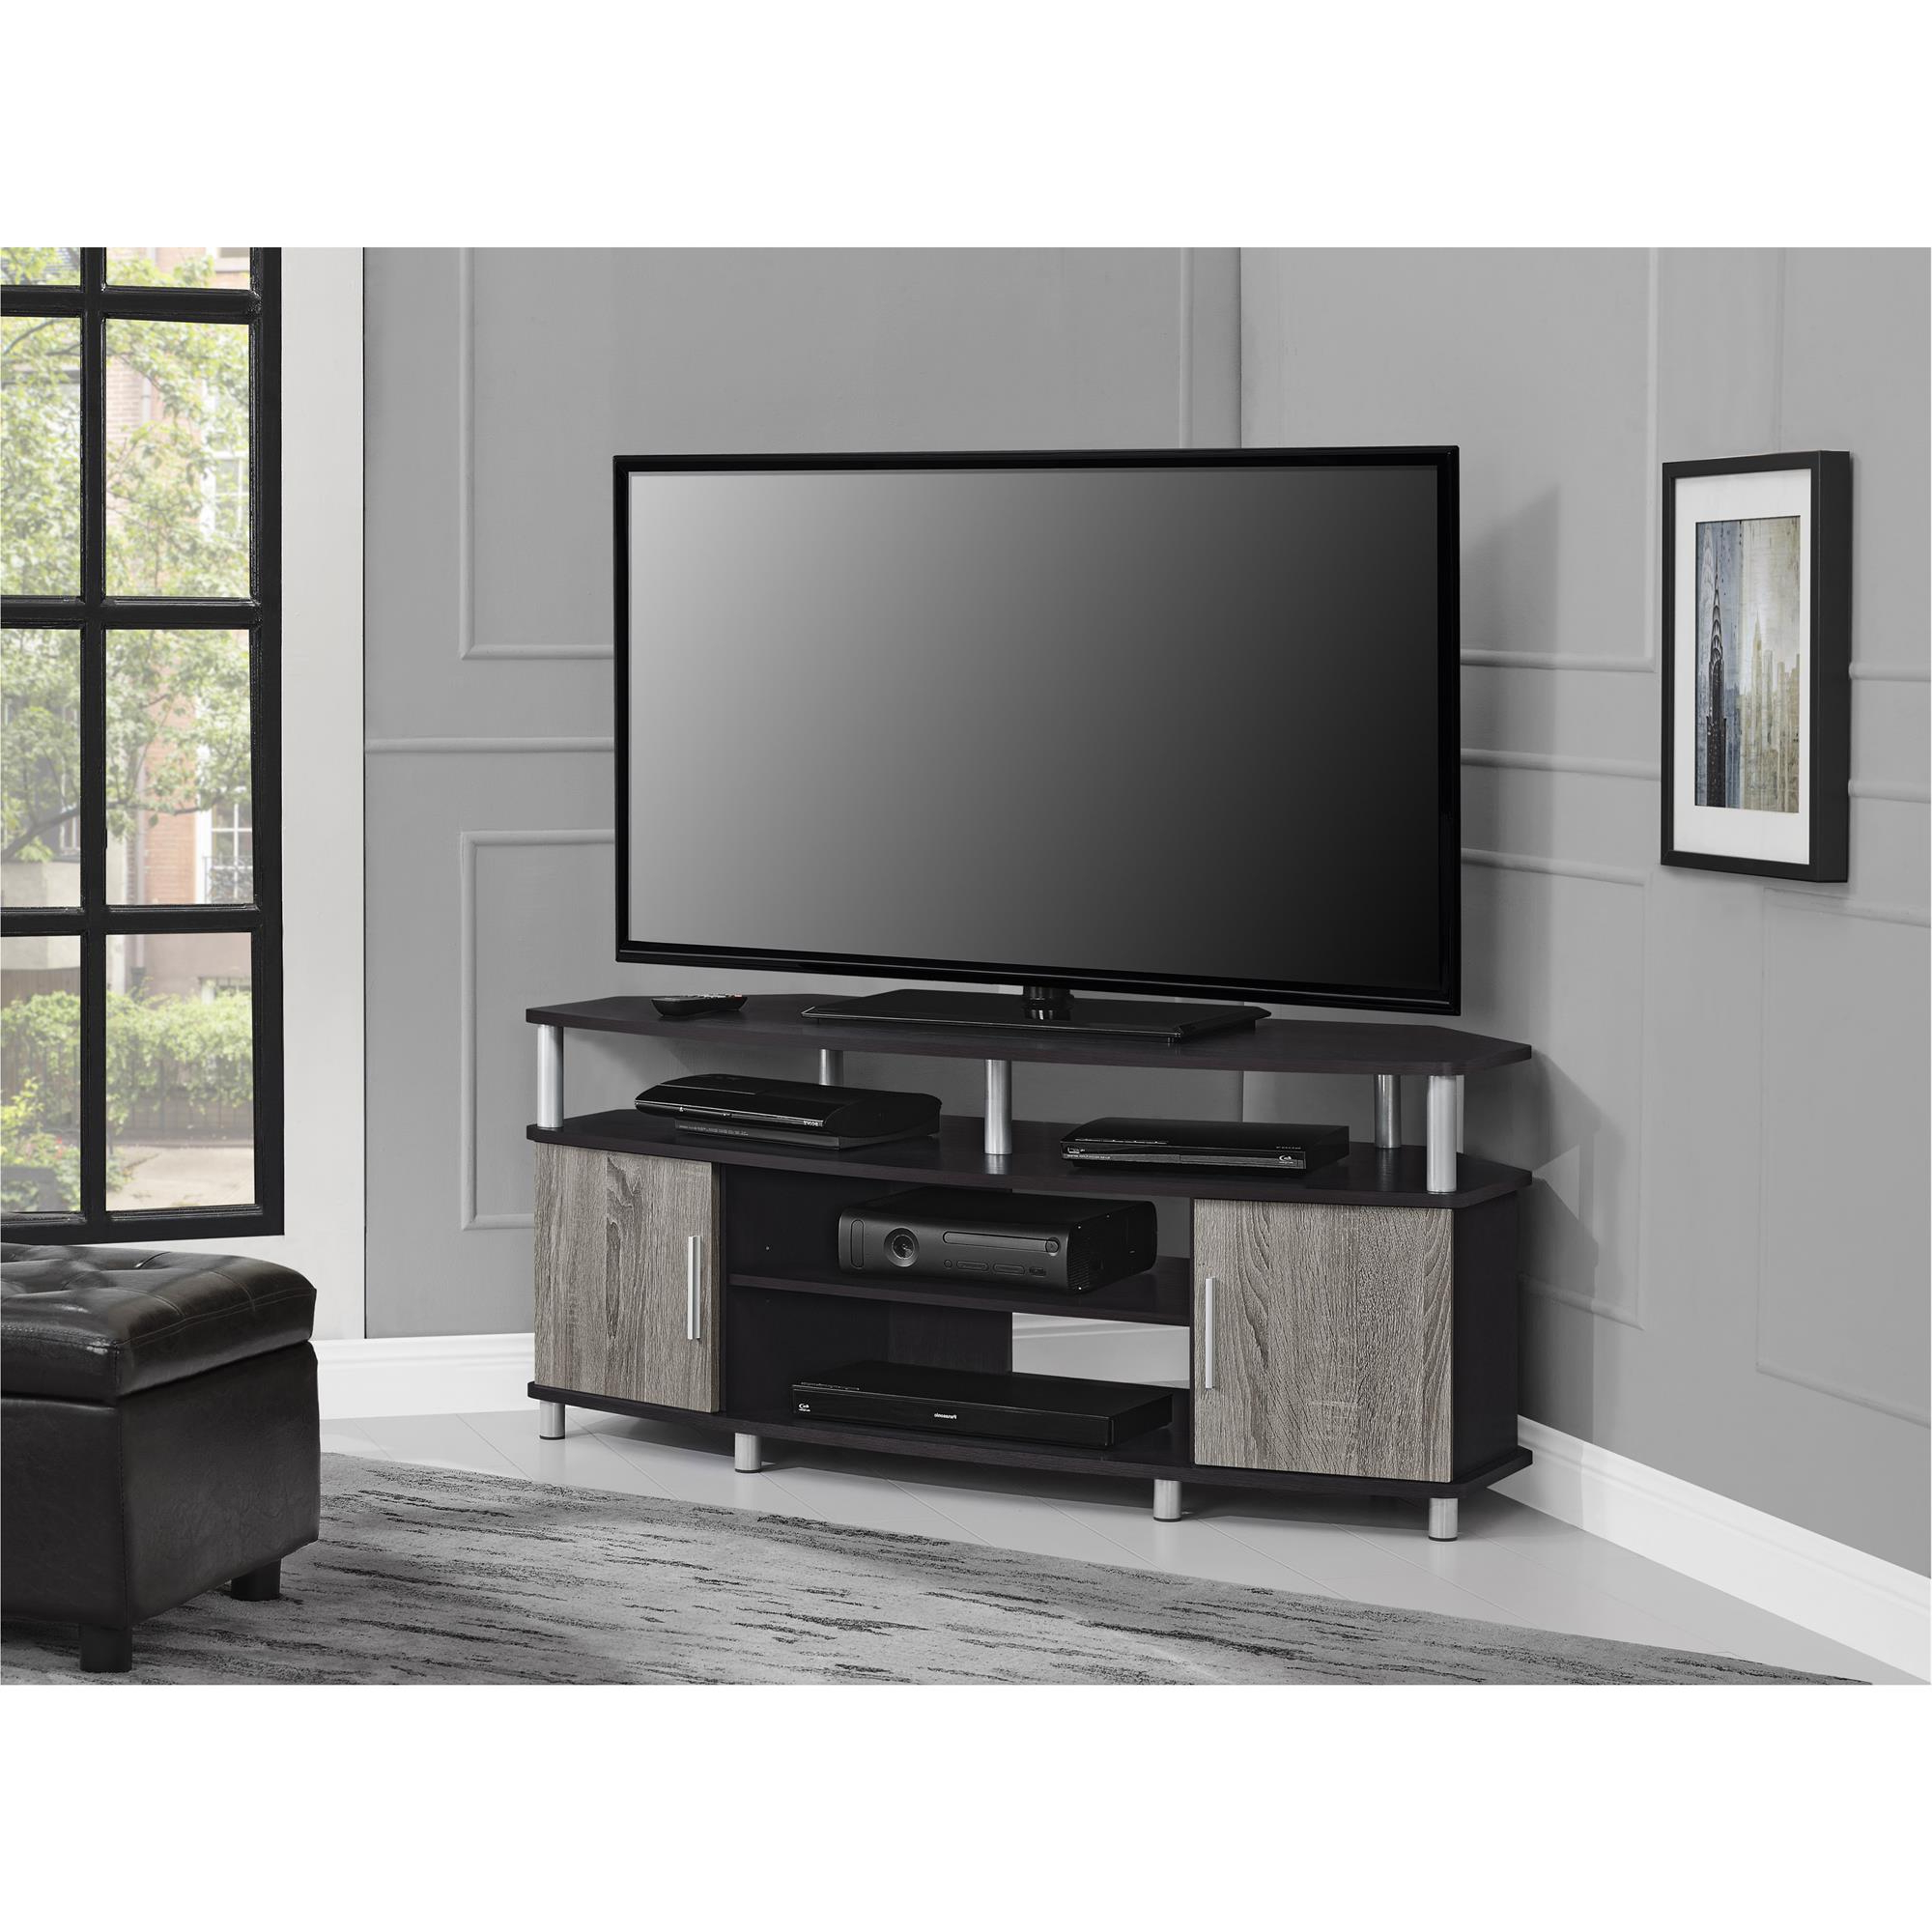 "Fashionable Corner Tv Stands With Regard To Ameriwood Home Carson Corner Tv Stand For Tvs Up To 50"" Wide, Black (Gallery 1 of 20)"